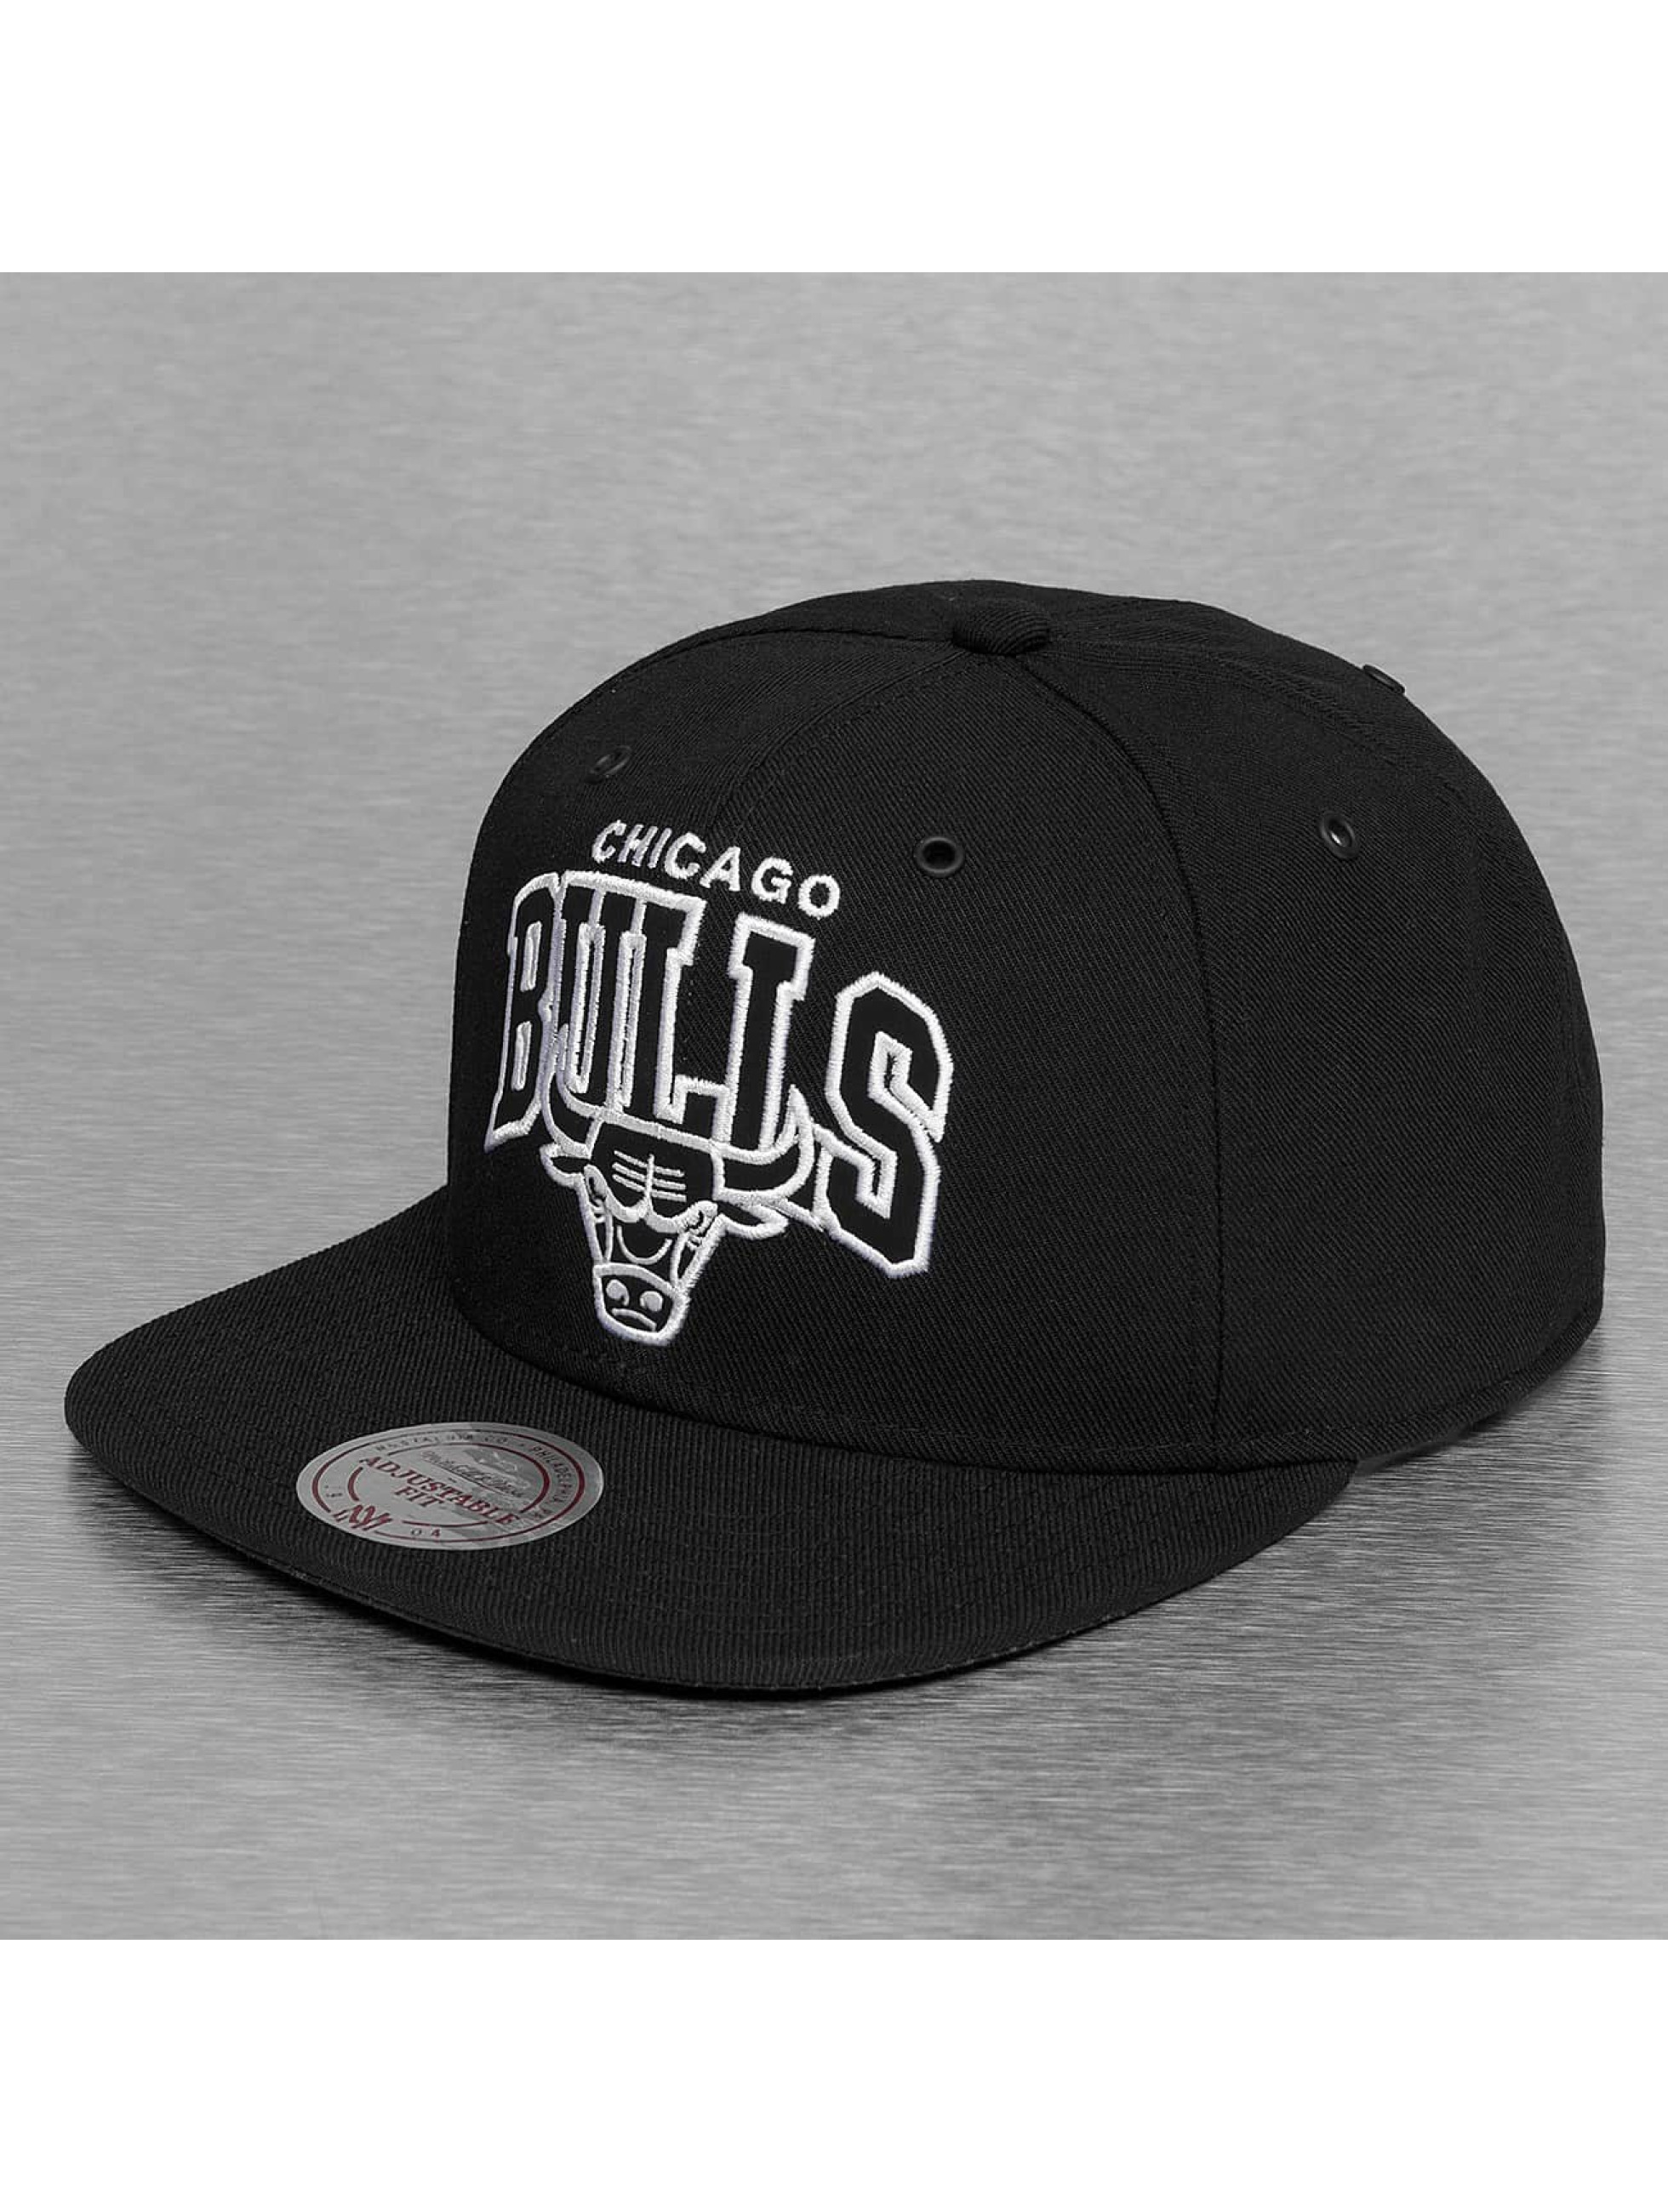 Mitchell & Ness Snapback Cap Black and White Arch Chicago Bulls schwarz